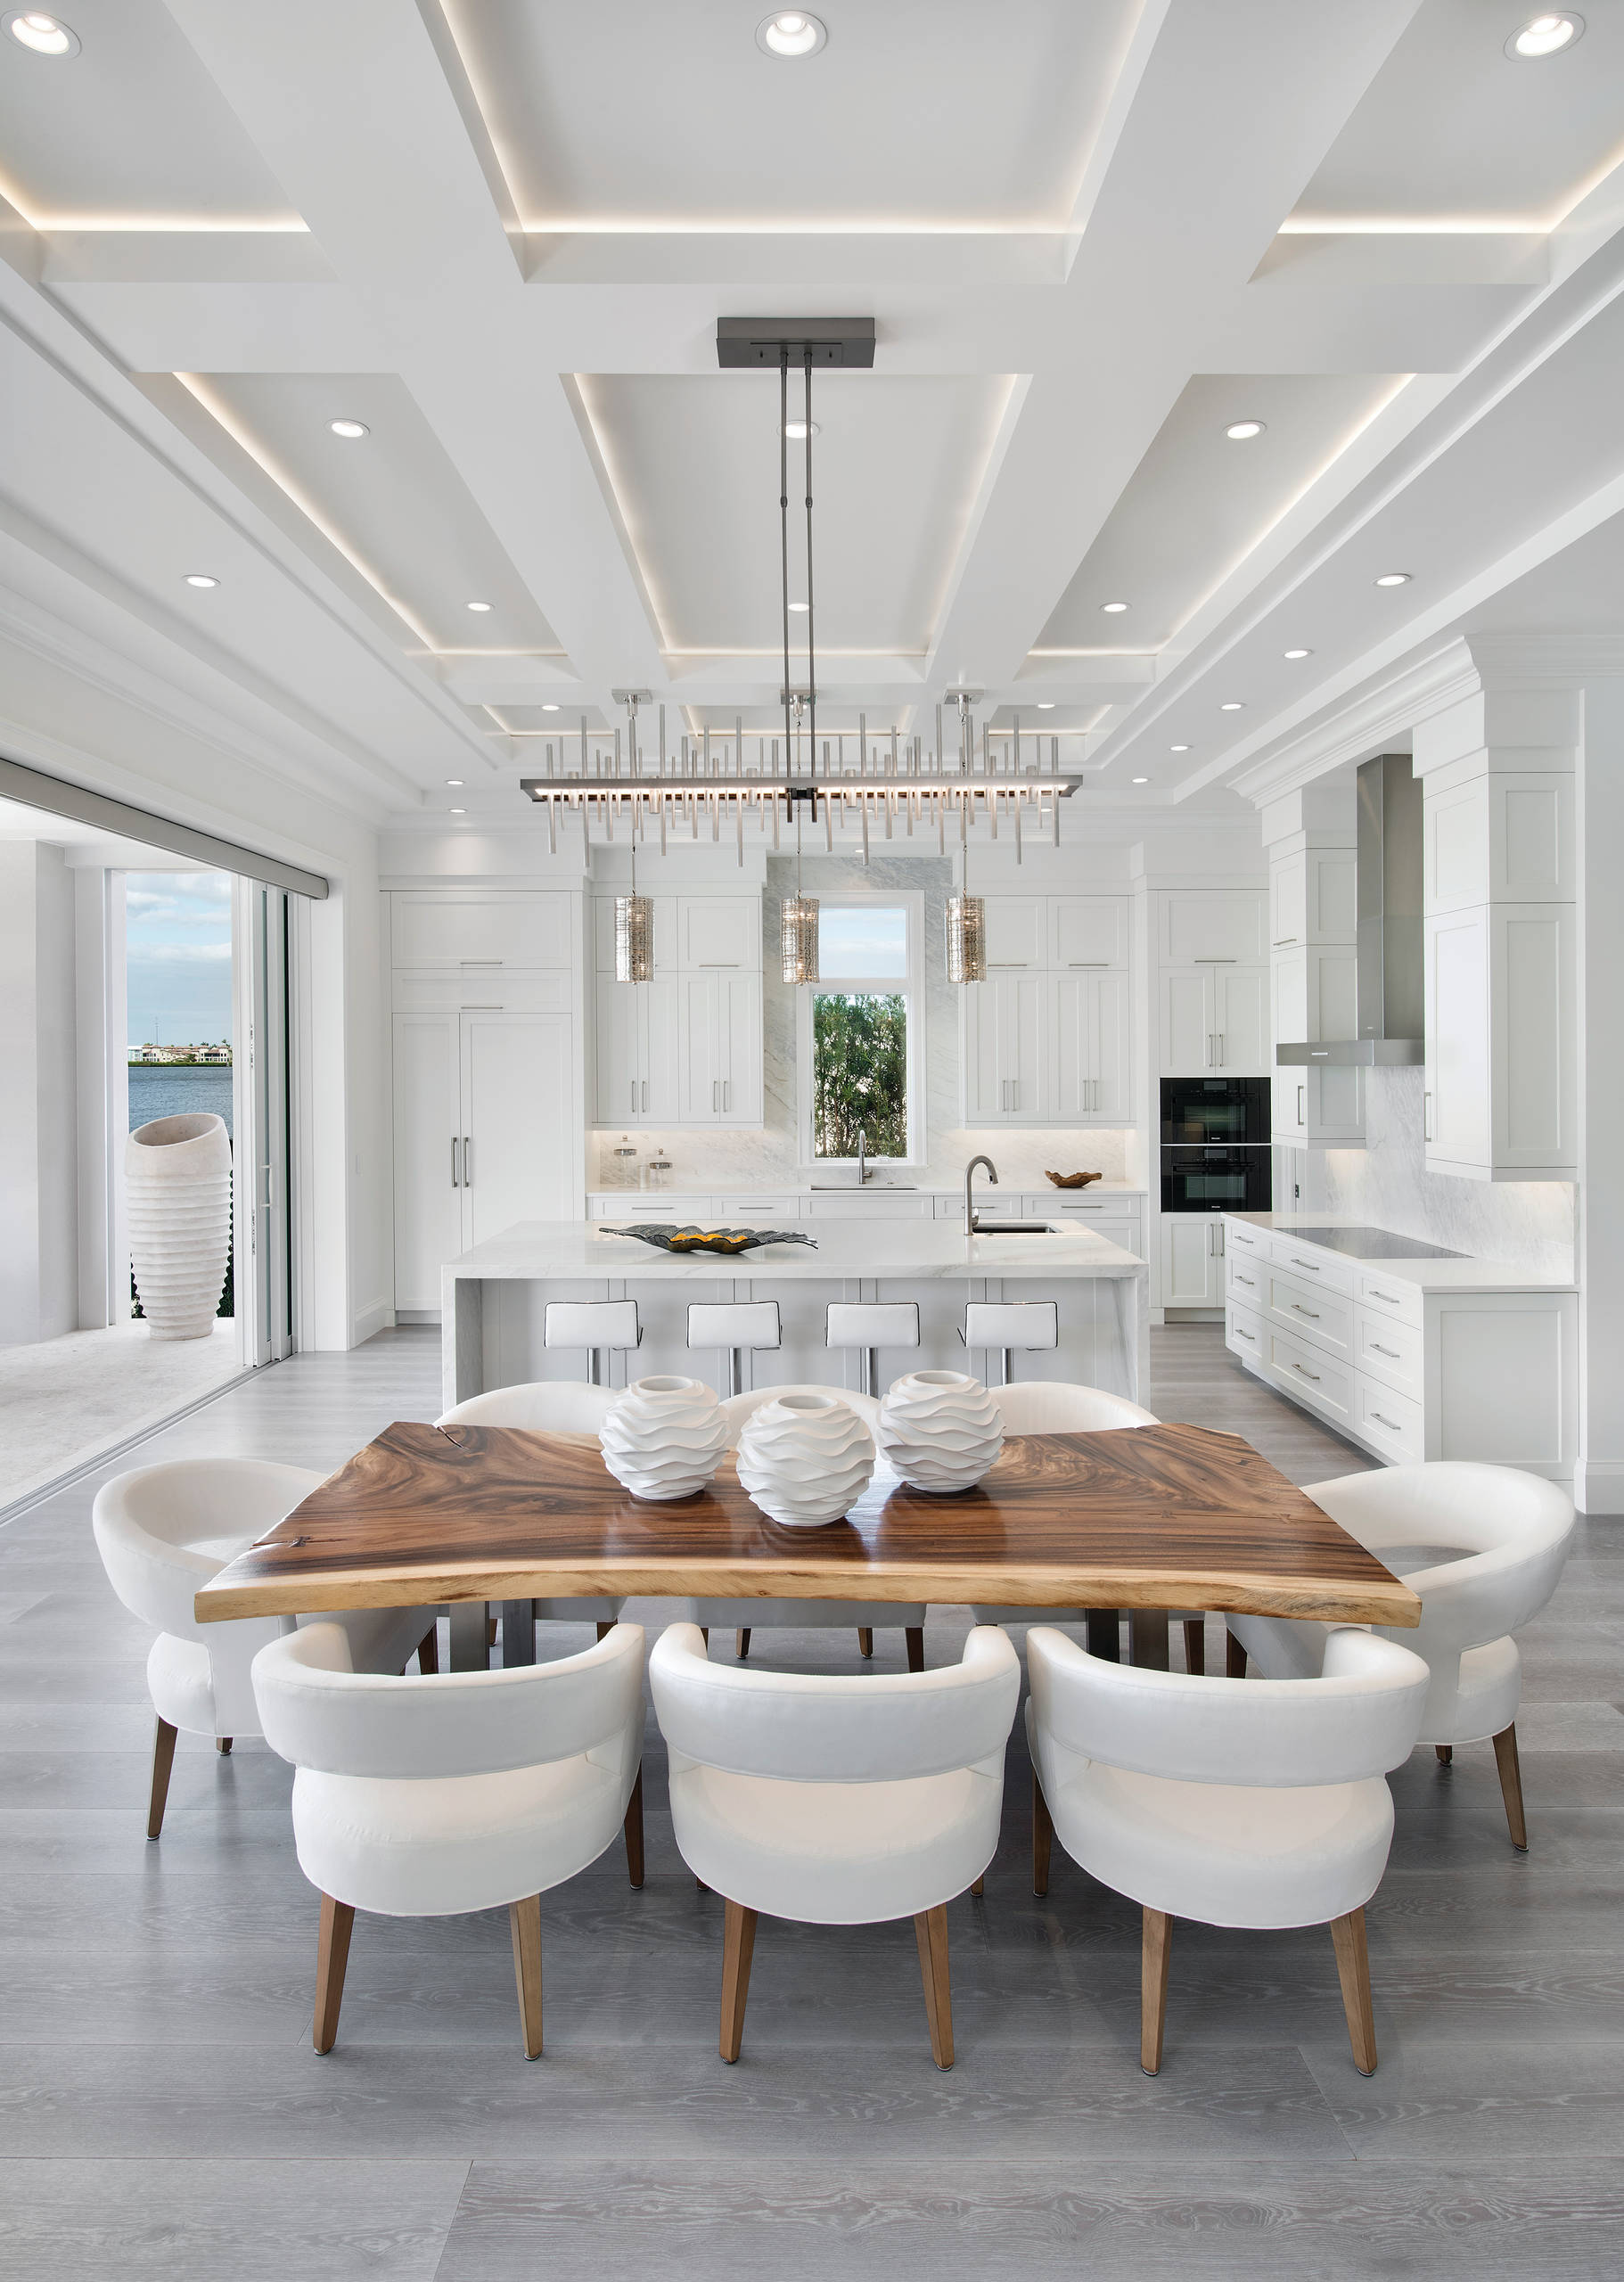 75 Beautiful Kitchen Dining Room Combo Pictures Ideas February 2021 Houzz